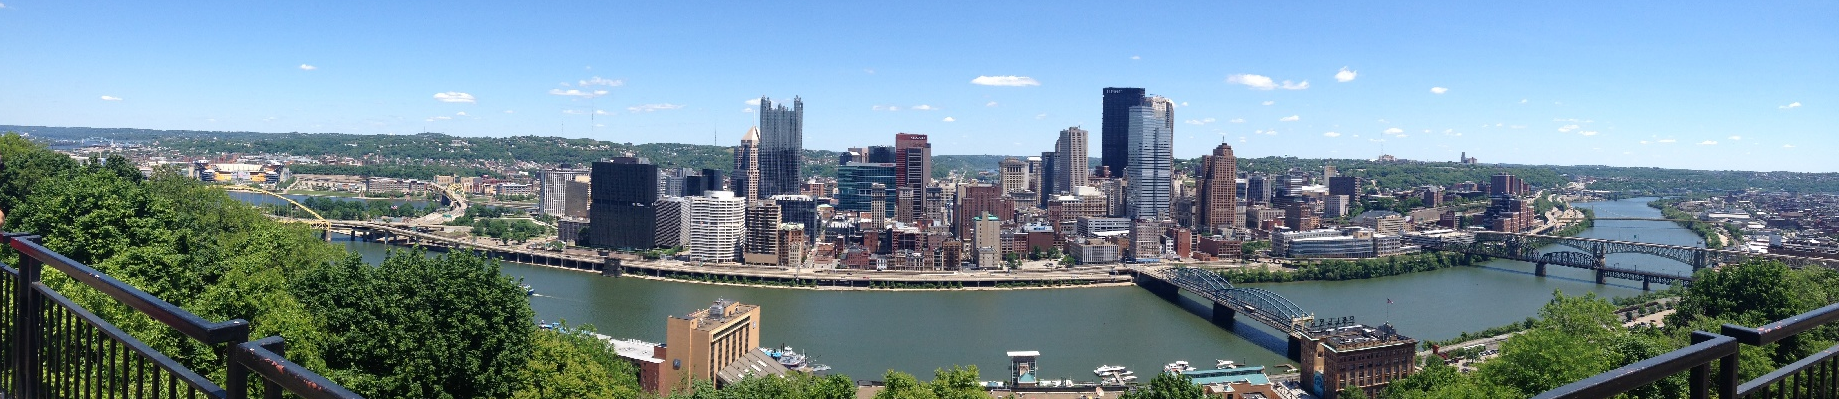 Panoramic view of Pittsburgh's skyline during the day